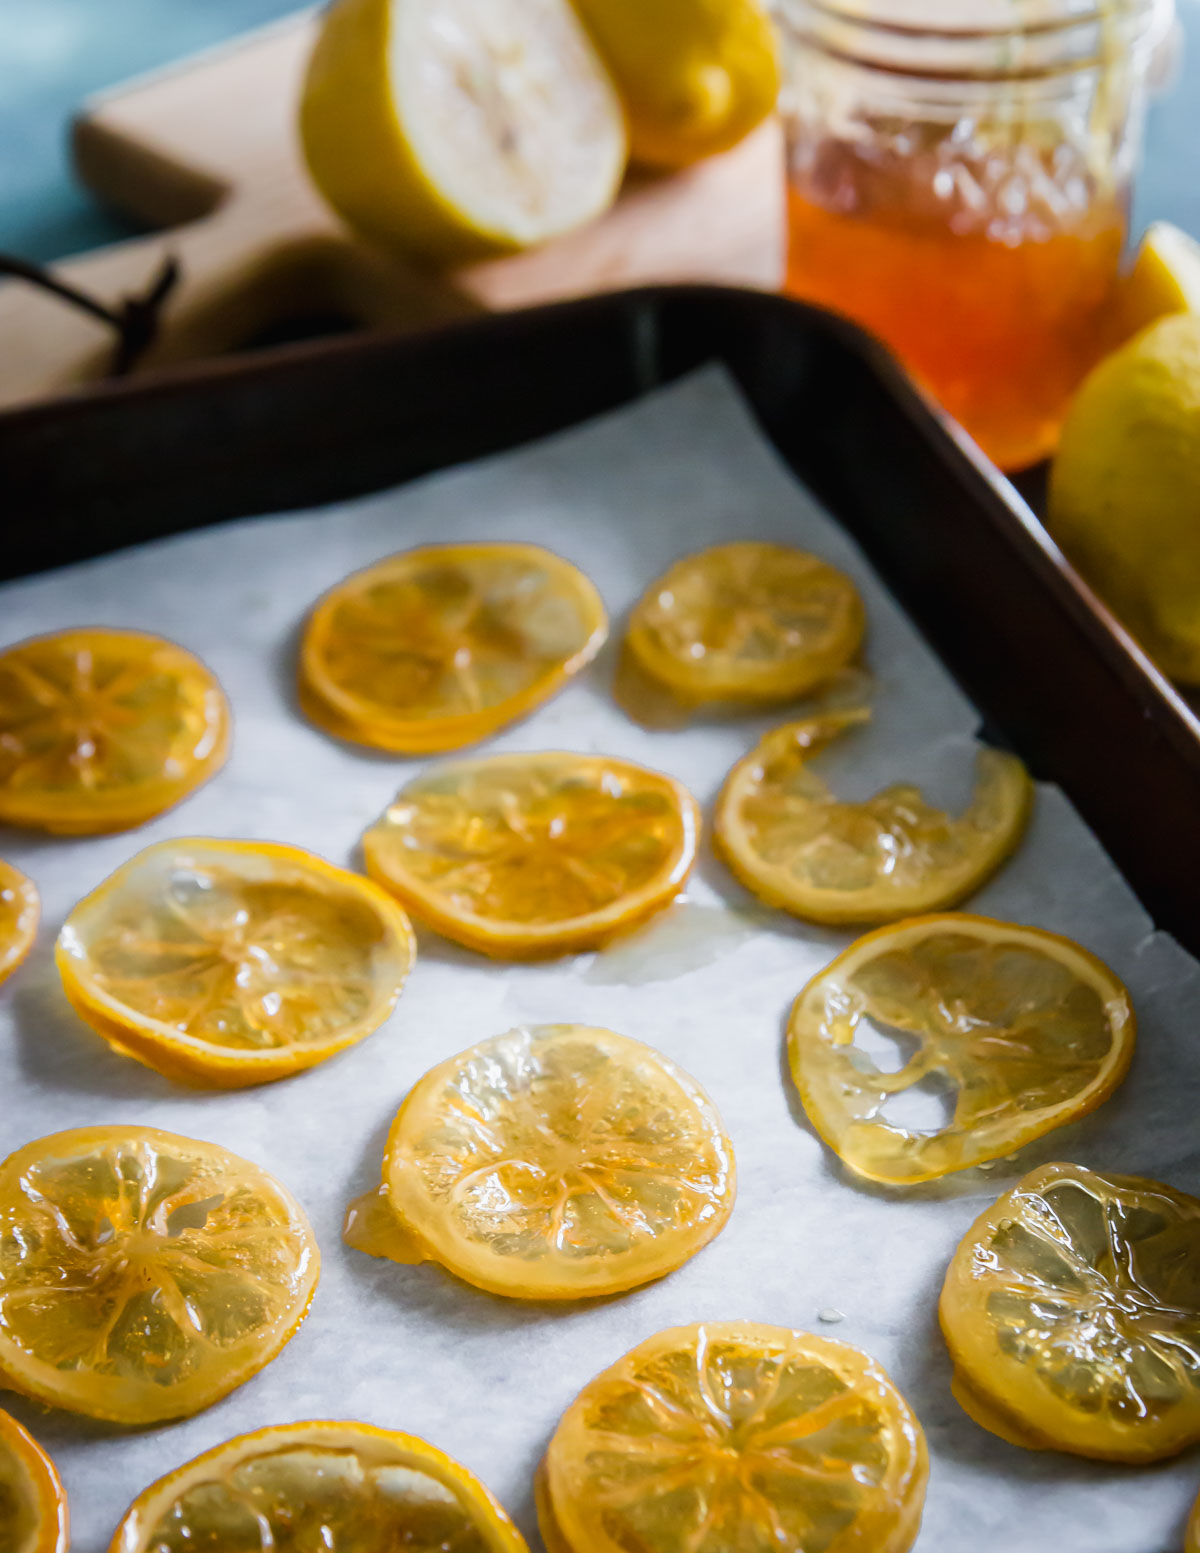 Candied lemon slices drying on a sheet pan